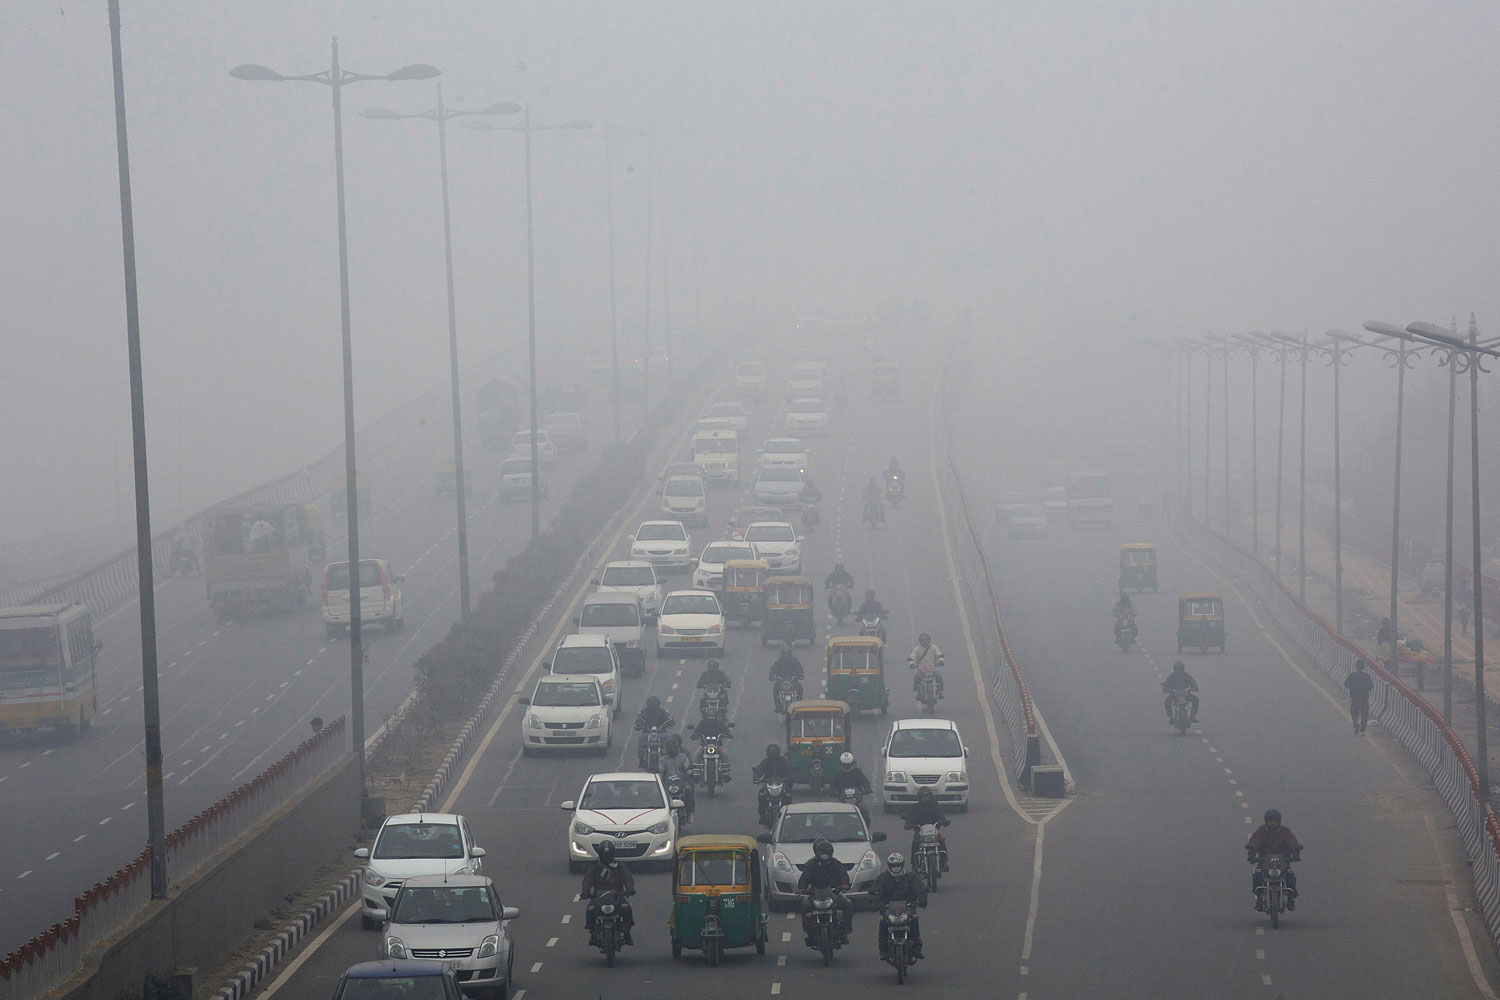 Traffic make way in haze mainly caused by air pollution in Delhi on Jan. 20, 2014